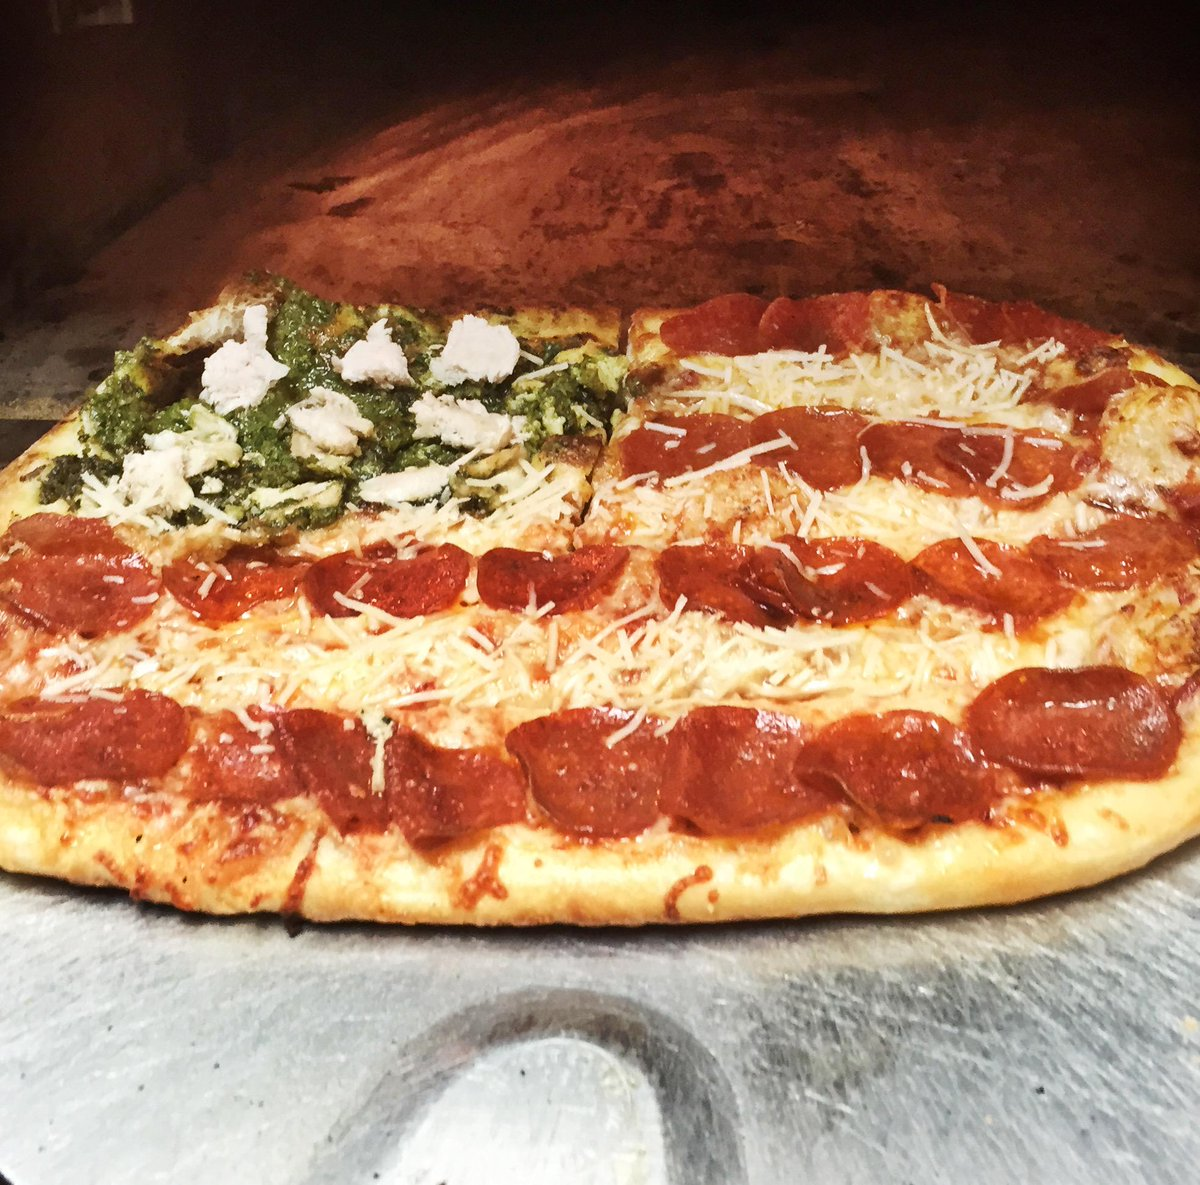 We take #NationalPizzaDay very seriously http://t.co/OHyJ1PI4OL